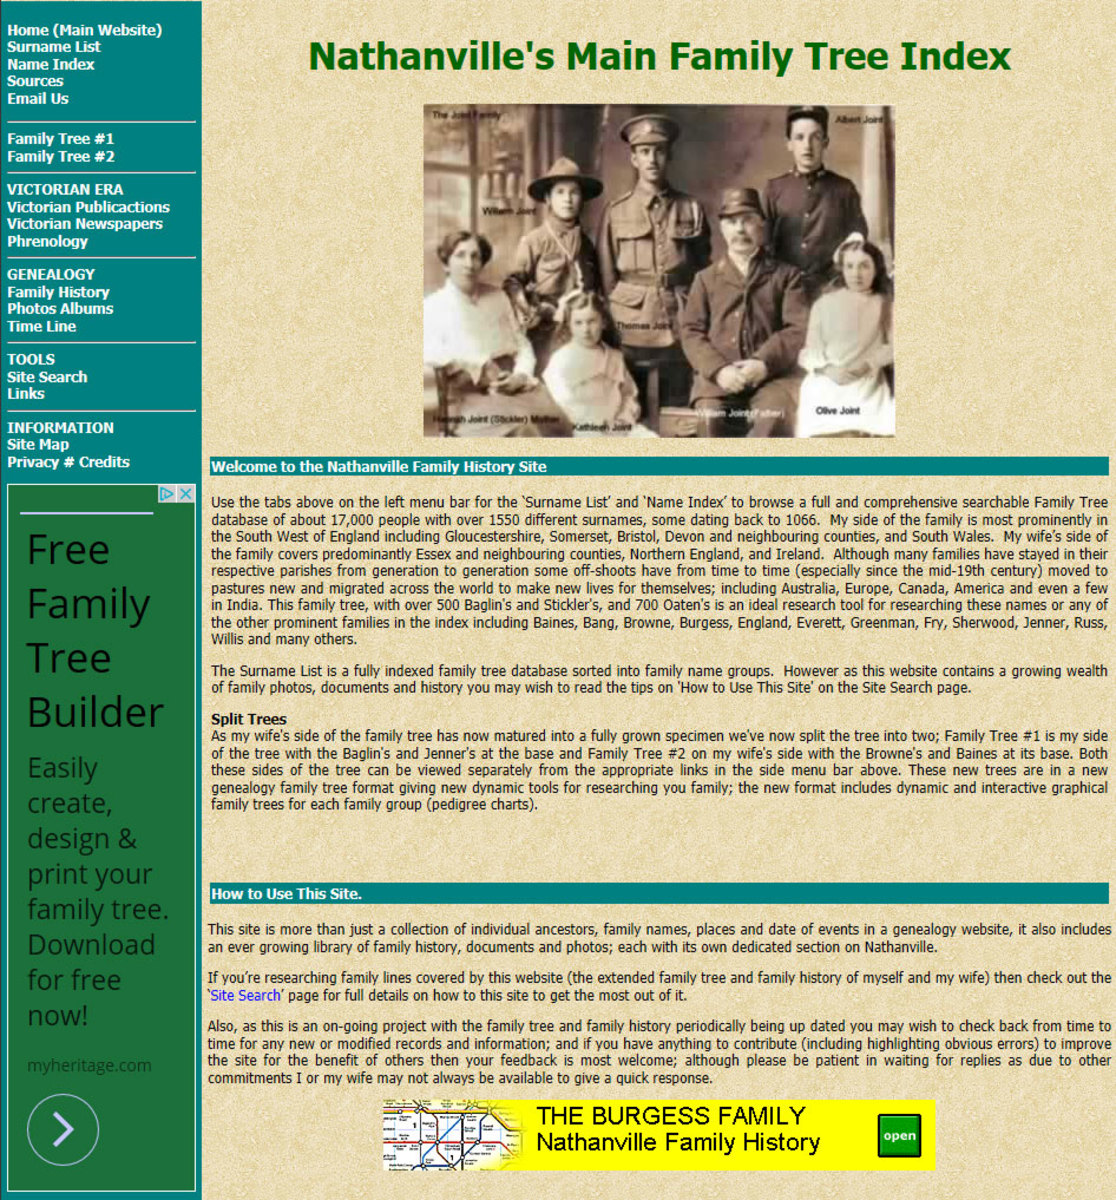 Choosing the Best Family Tree Software